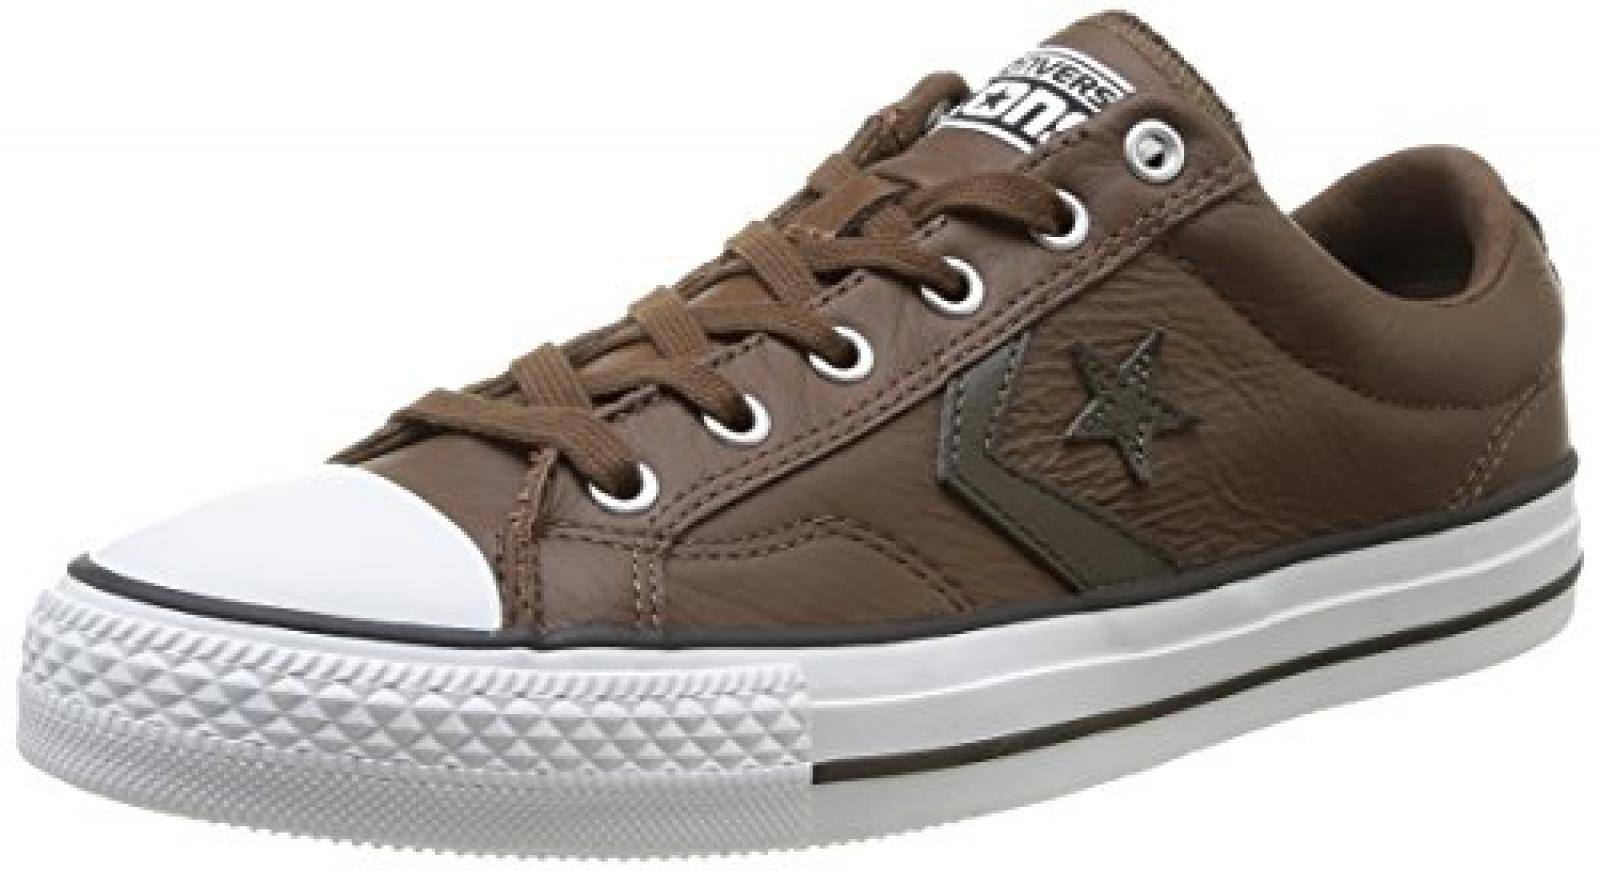 Converse Star Player Adulte Leather Ox 382890 Unisex - Erwachsene Sneaker